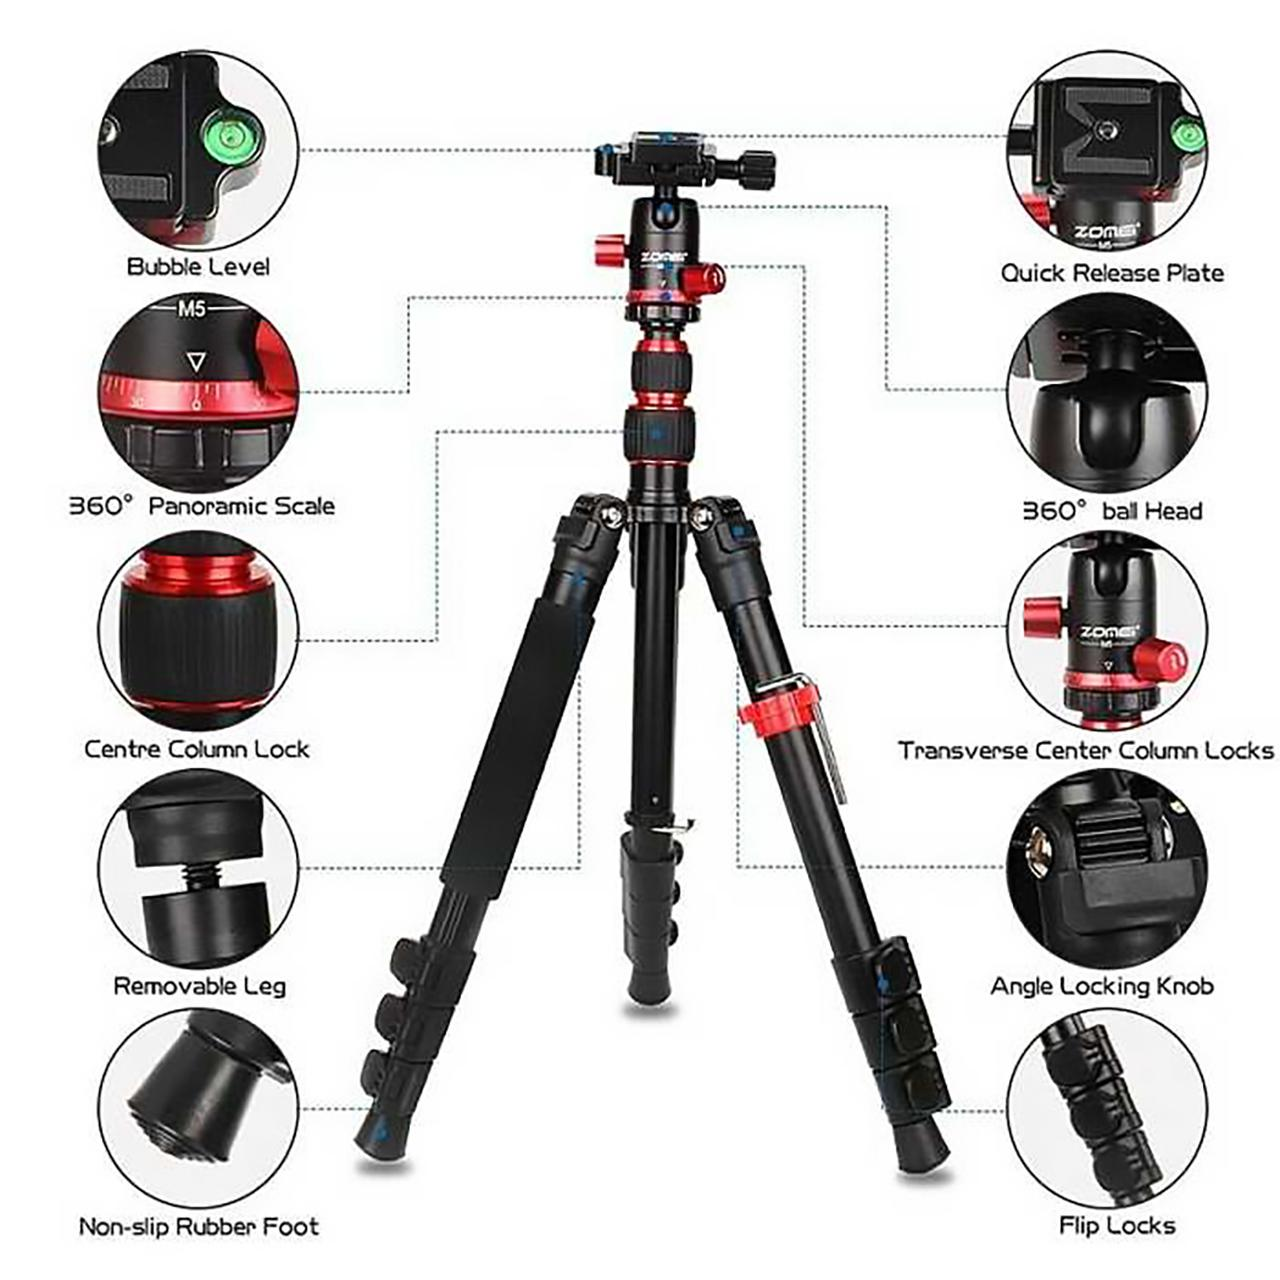 Zomei M5 tripod details and features